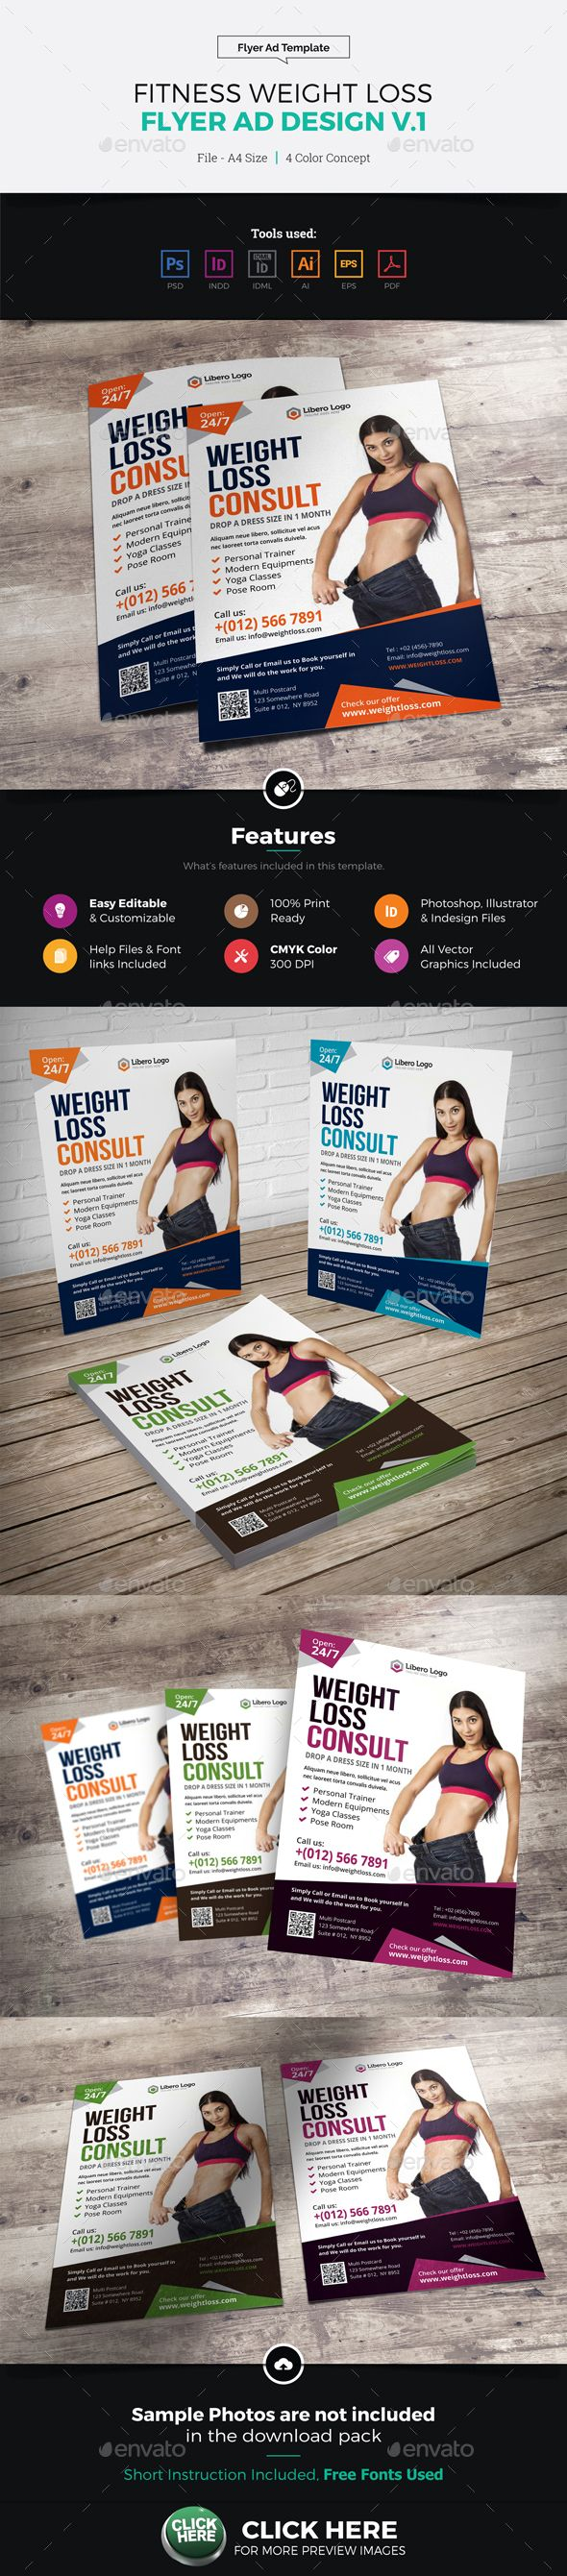 Fitness Weight Loss A5 Flyer Design Template PSD, Vector EPS, InDesign INDD, AI Illustrator